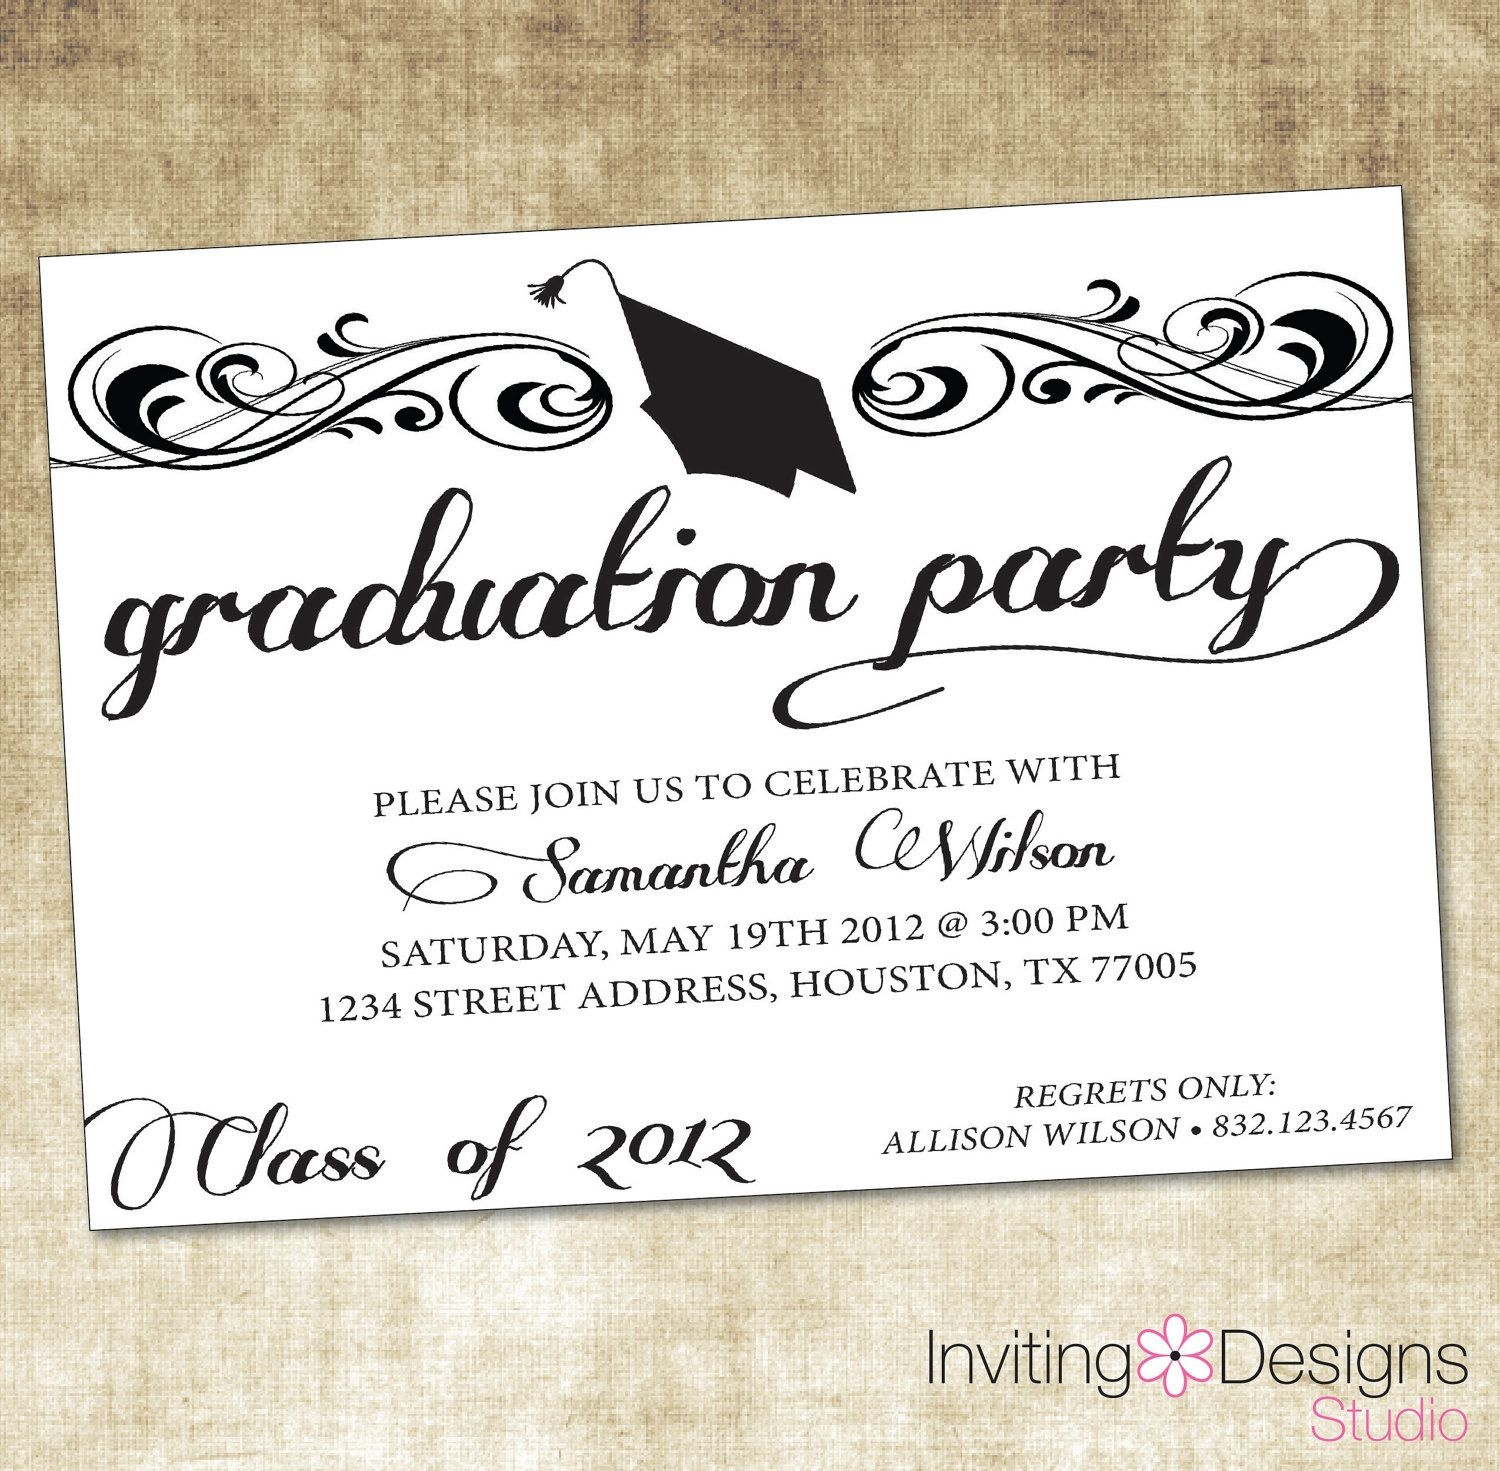 Image Result For Graduation Party Invitation Wording Ideas   Zach - Free Printable Graduation Party Invitations 2014